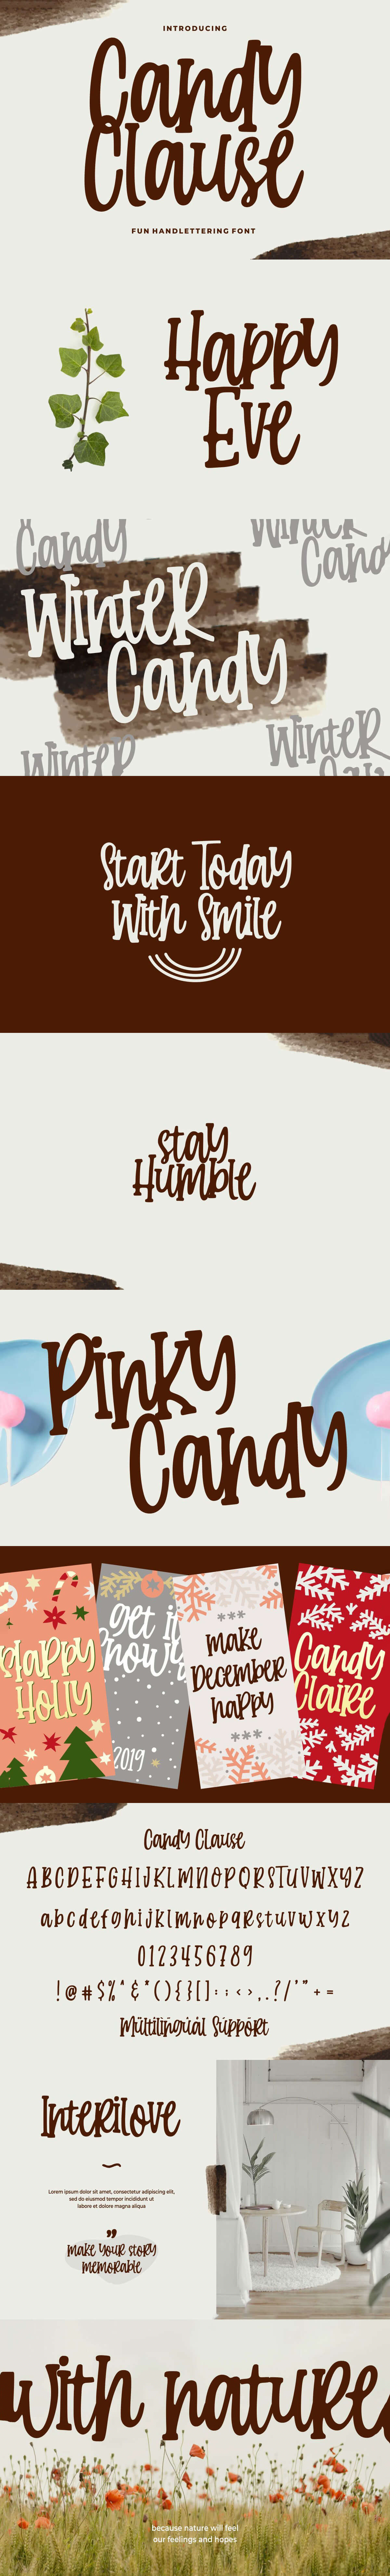 Free Candy Clause Handlettering Font